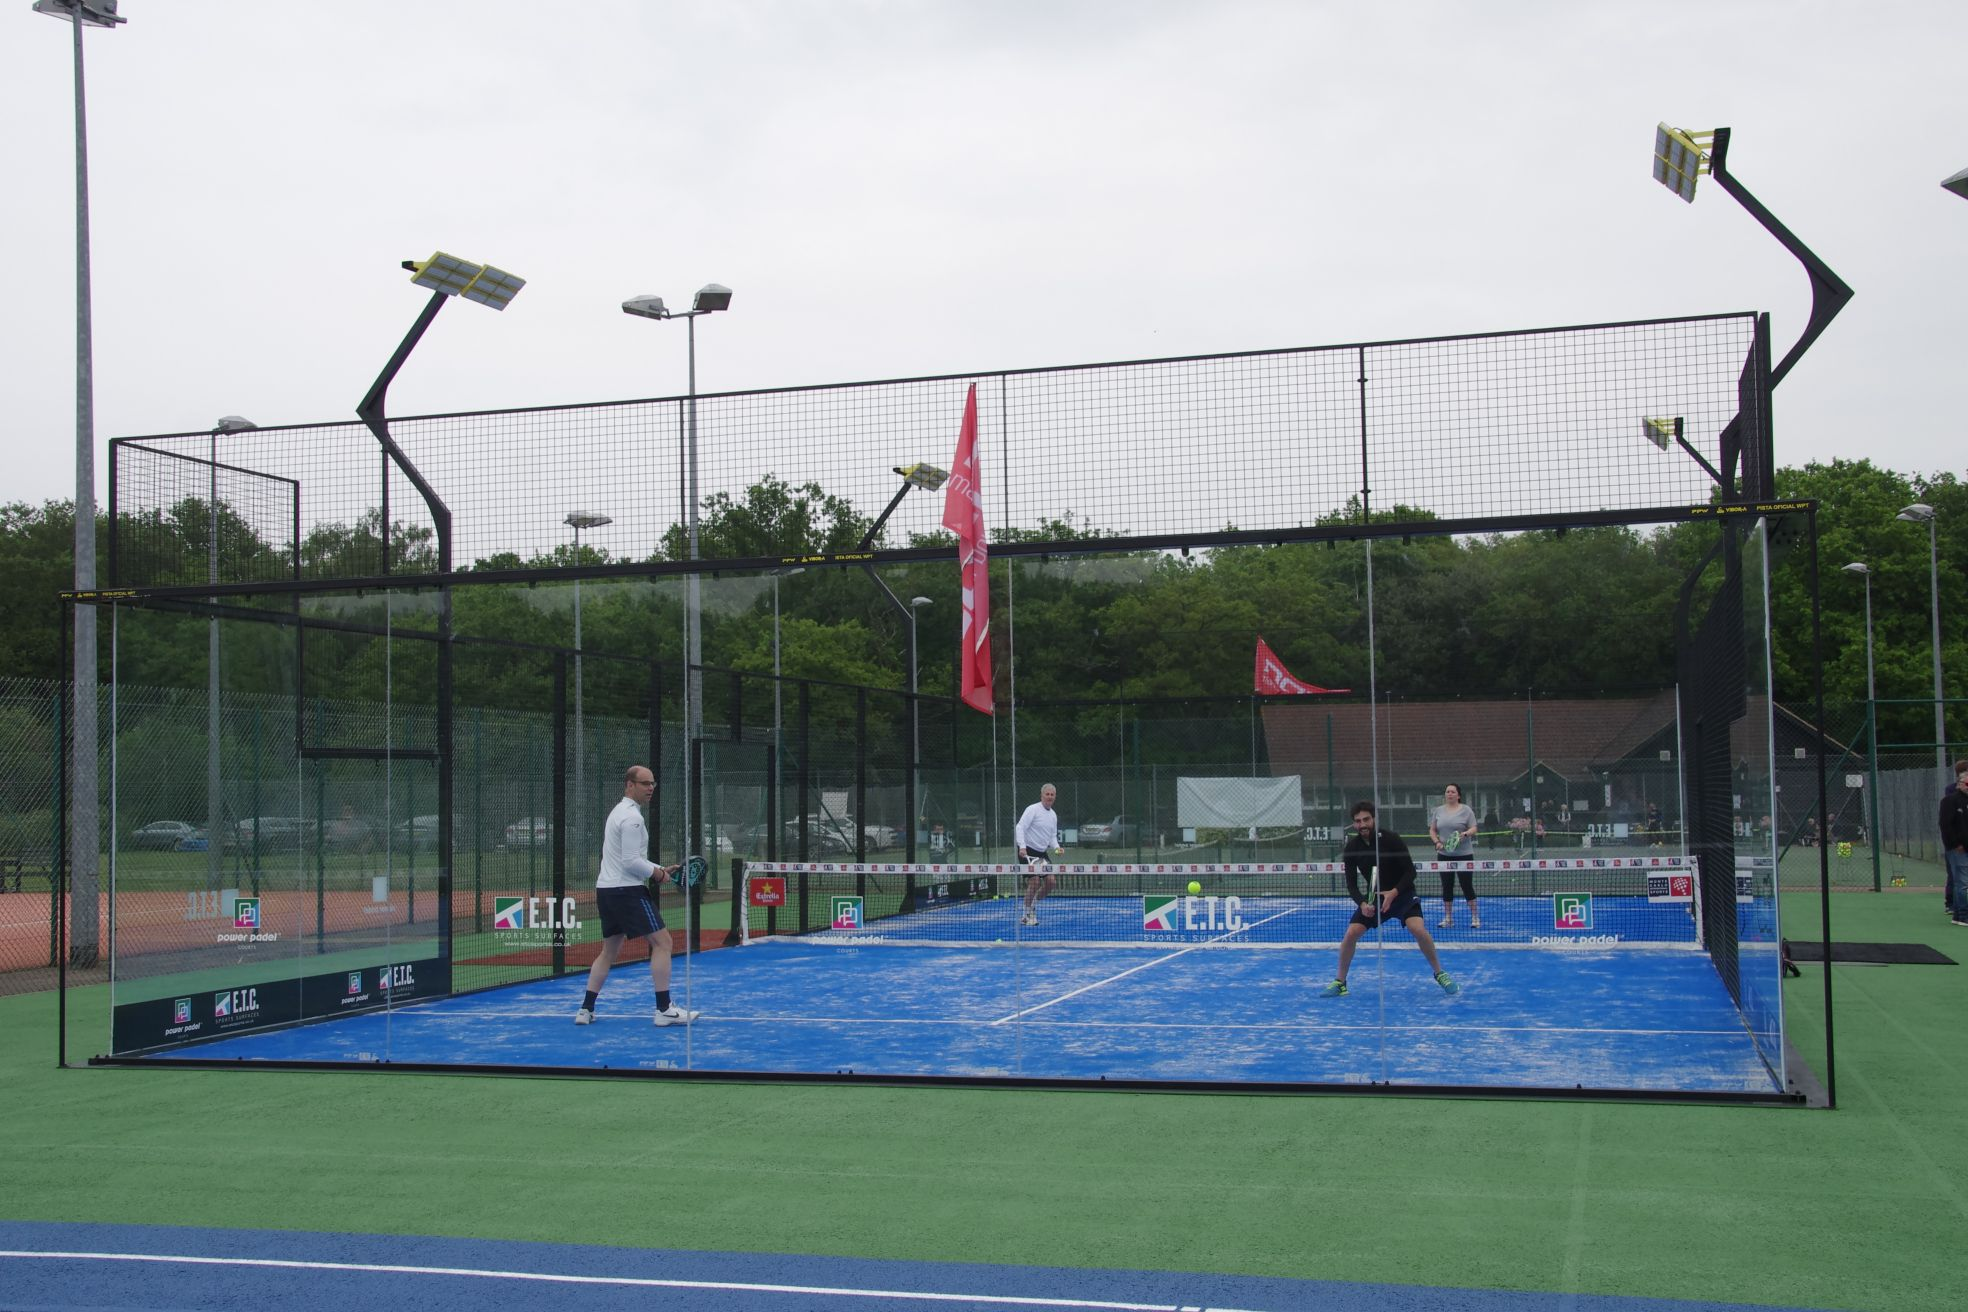 Choosing a Power Padel court installation from ETC Sports Surfaces can attract new players and increase your tennis court's revenue.